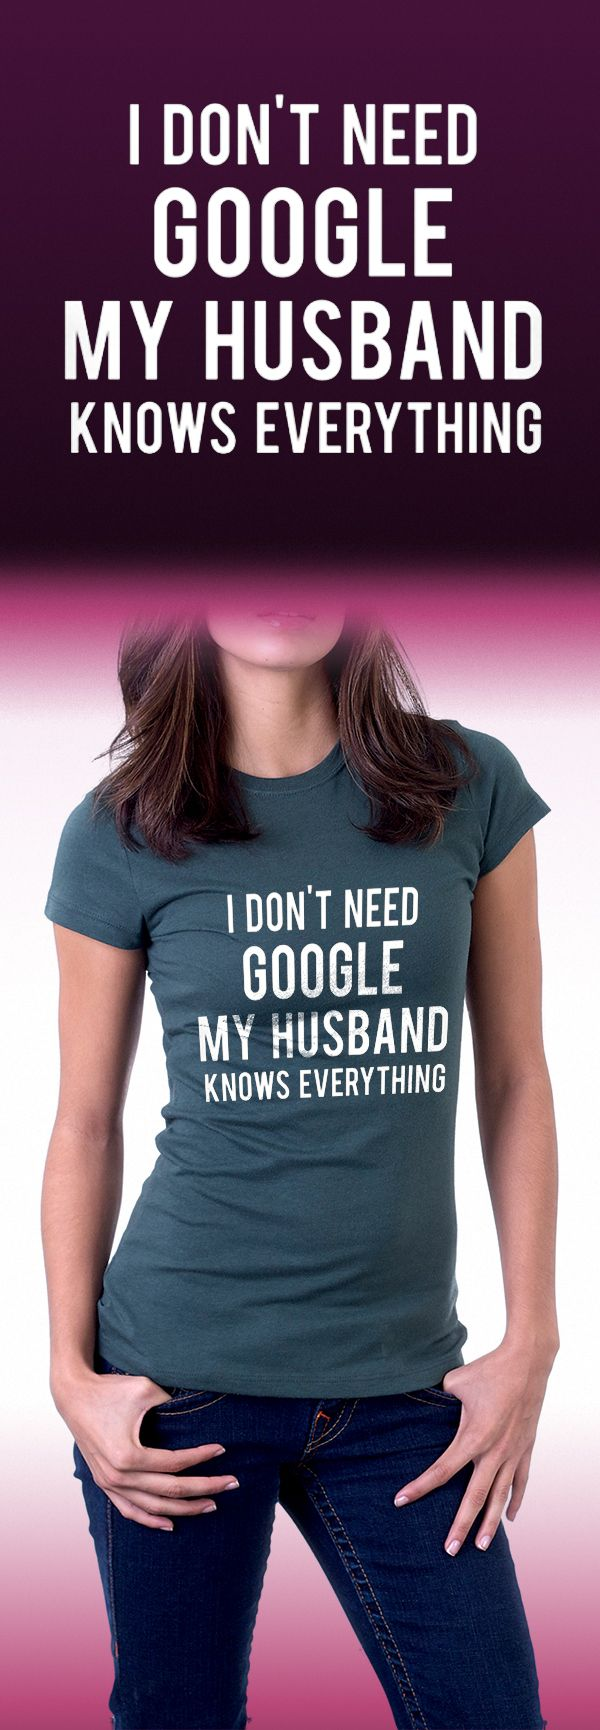 "Except I want one for my husband that says ""I don't need Google my wife knows everything""!!"